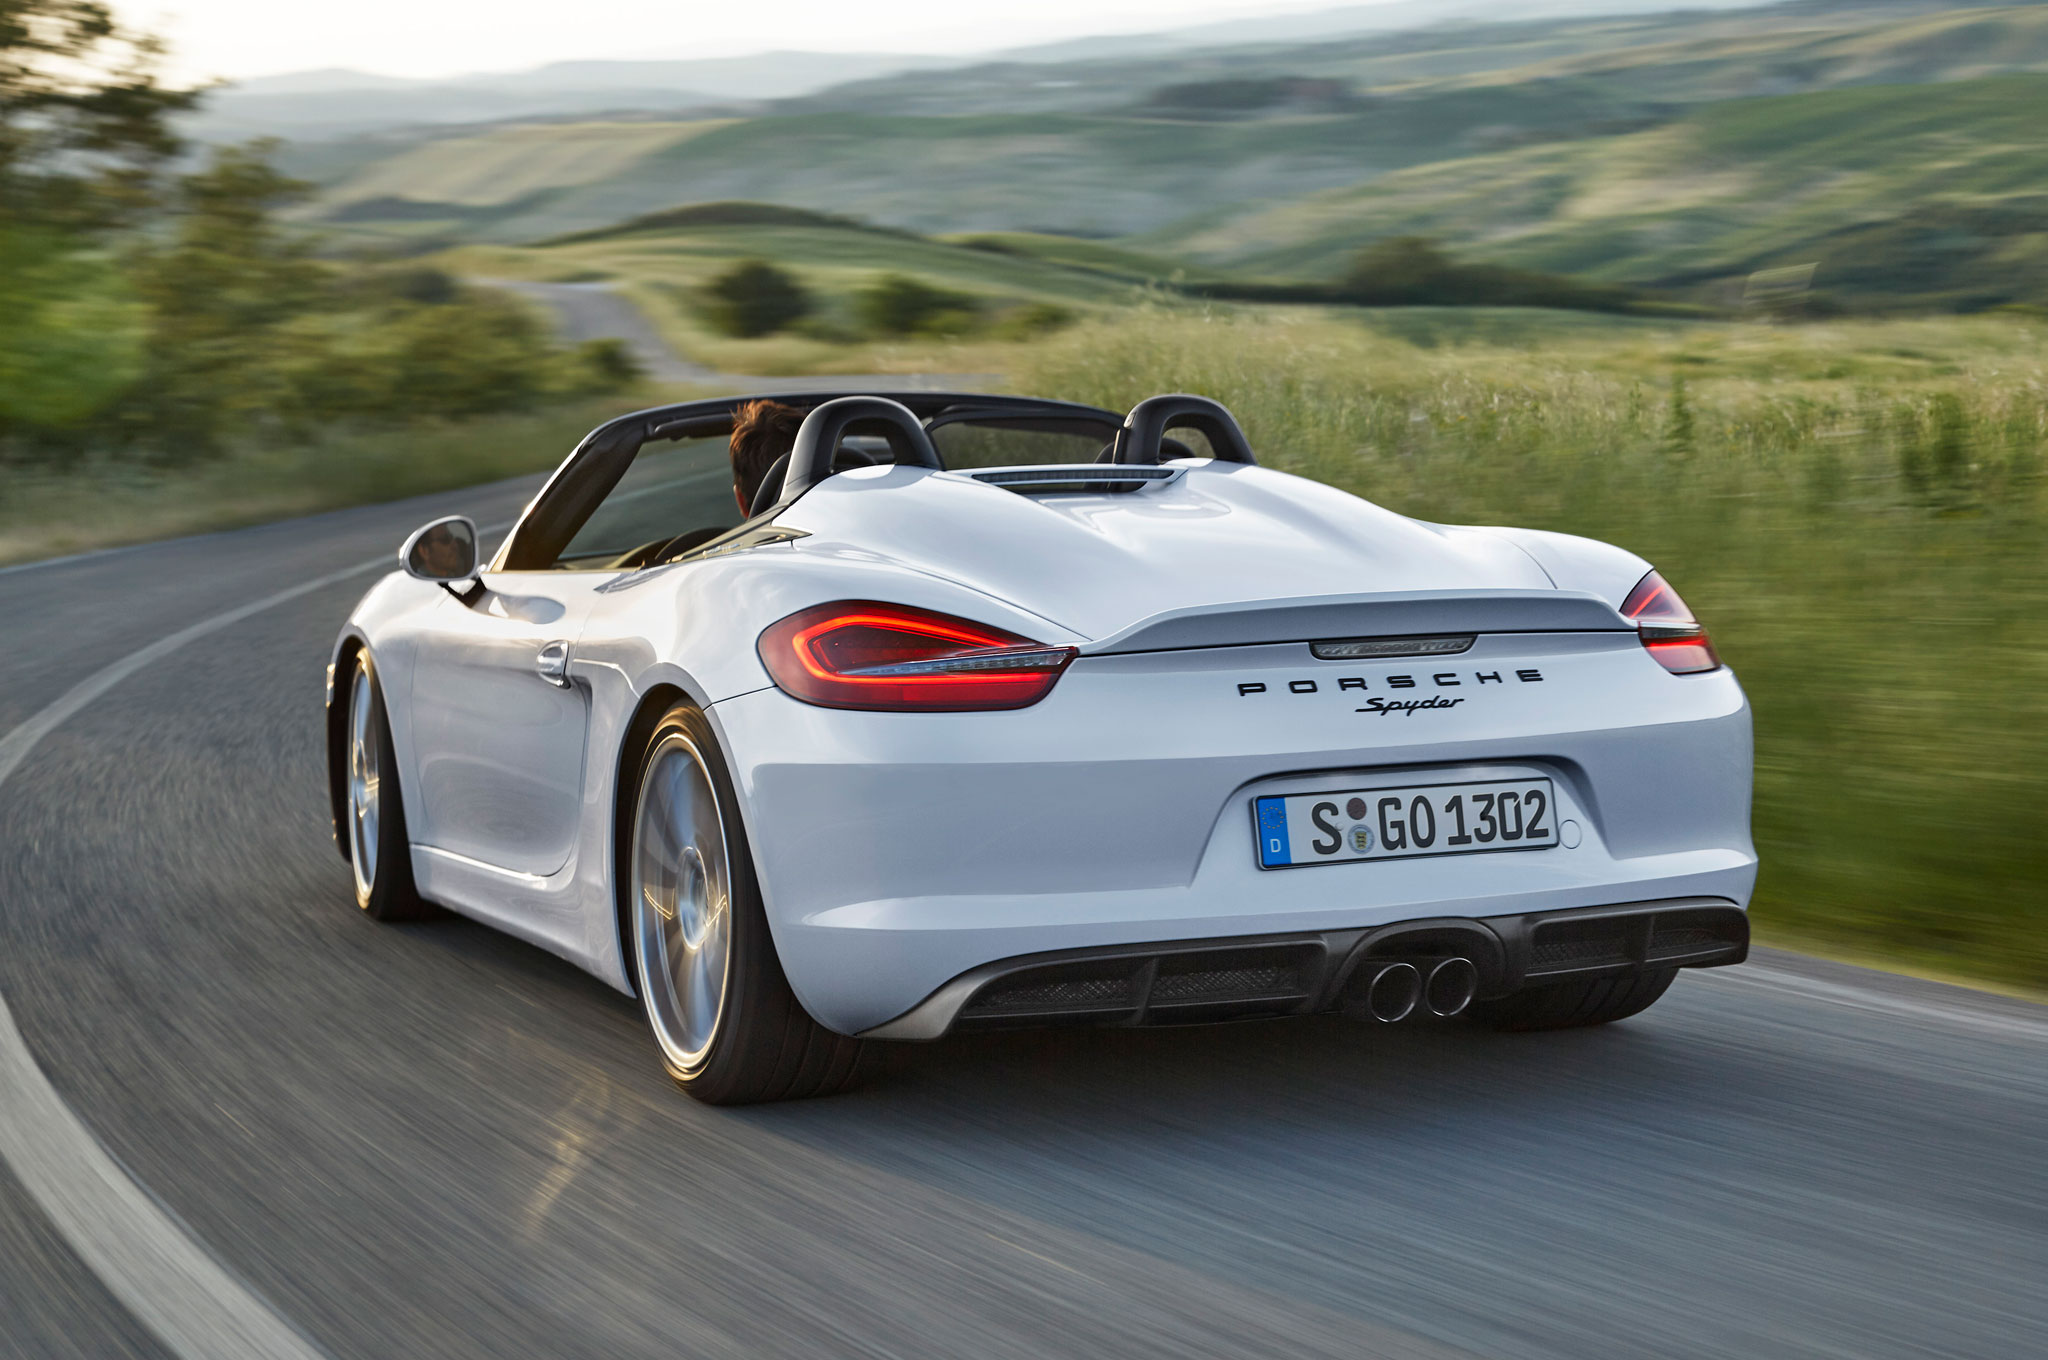 2013 Design Of The Year: Porsche Boxster